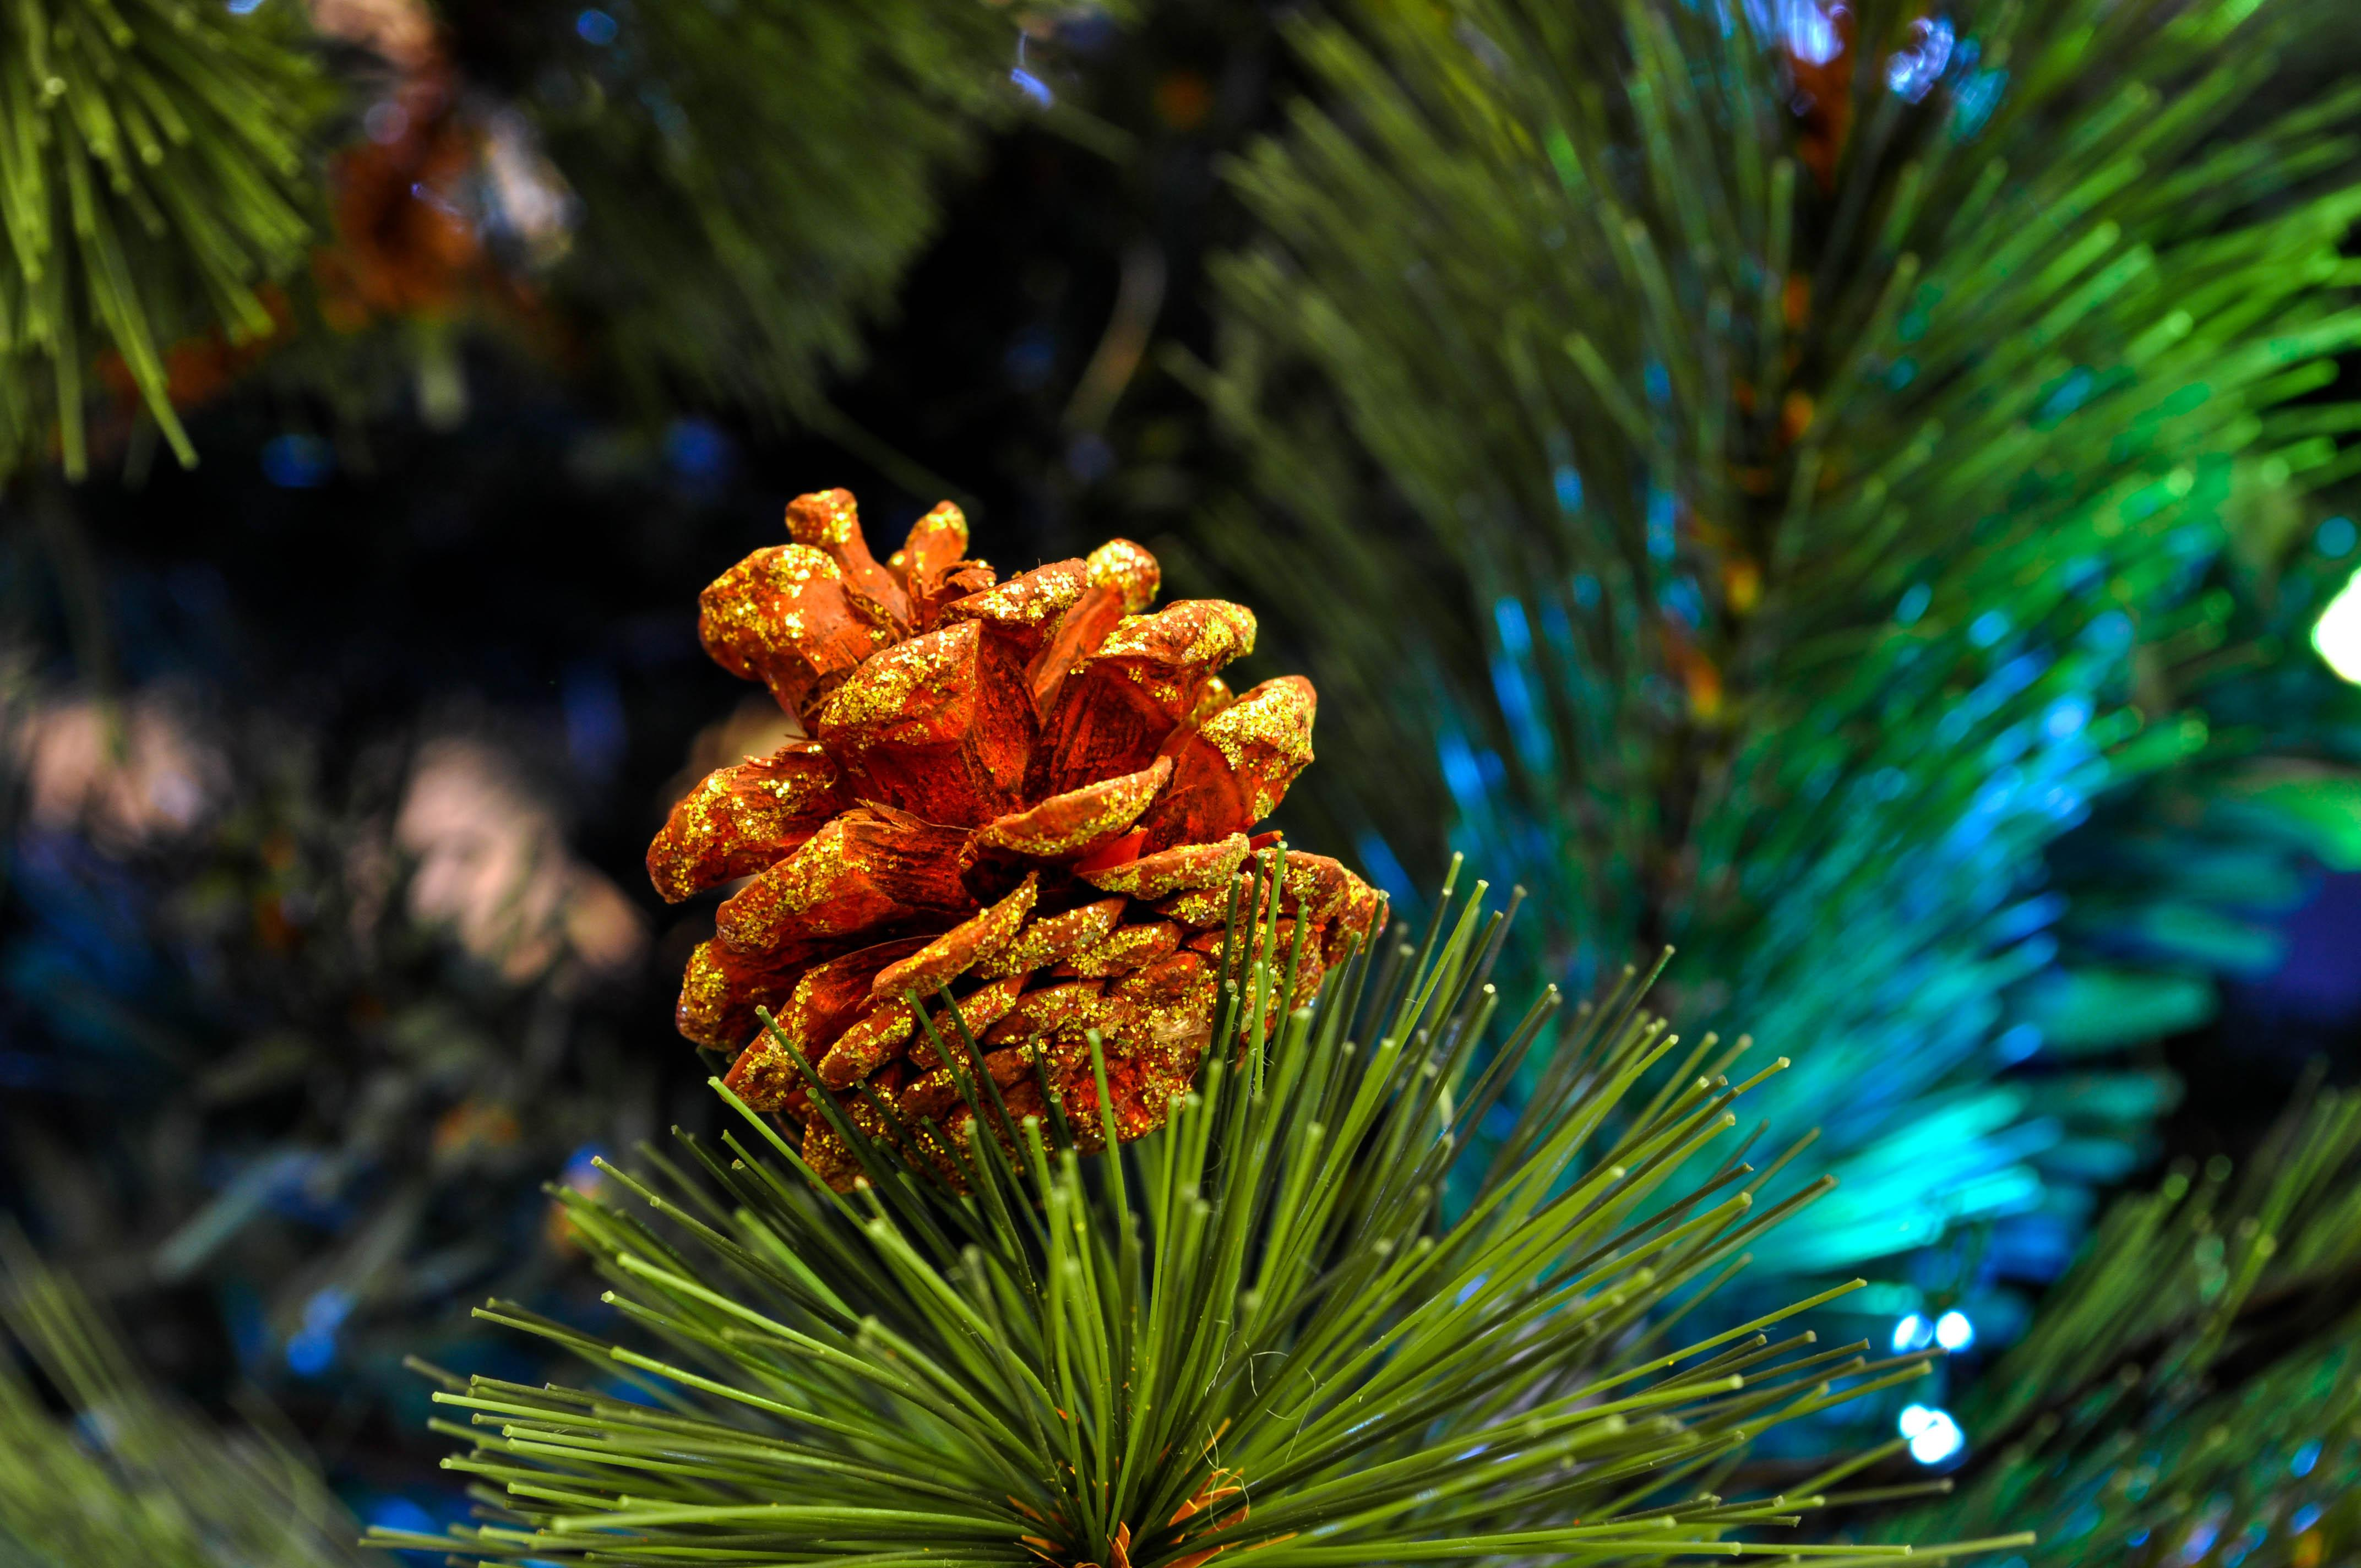 Christmas Tree Recycling Town Of Brownsburg Math Wallpaper Golden Find Free HD for Desktop [pastnedes.tk]